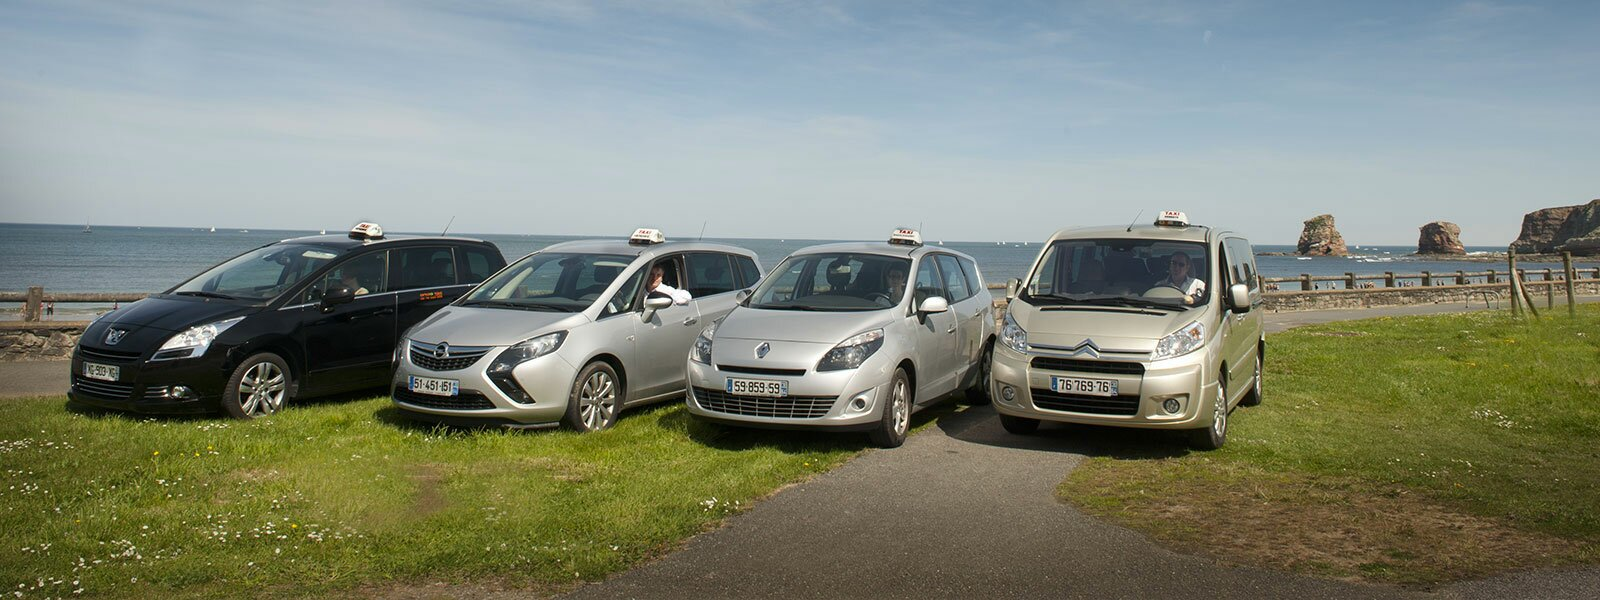 OUR CAR PARK FITS YOUR NEEDS <br>IN HENDAYE AND THE BASQUE COAST <br><br>&#9742; +33 559 20 20 30